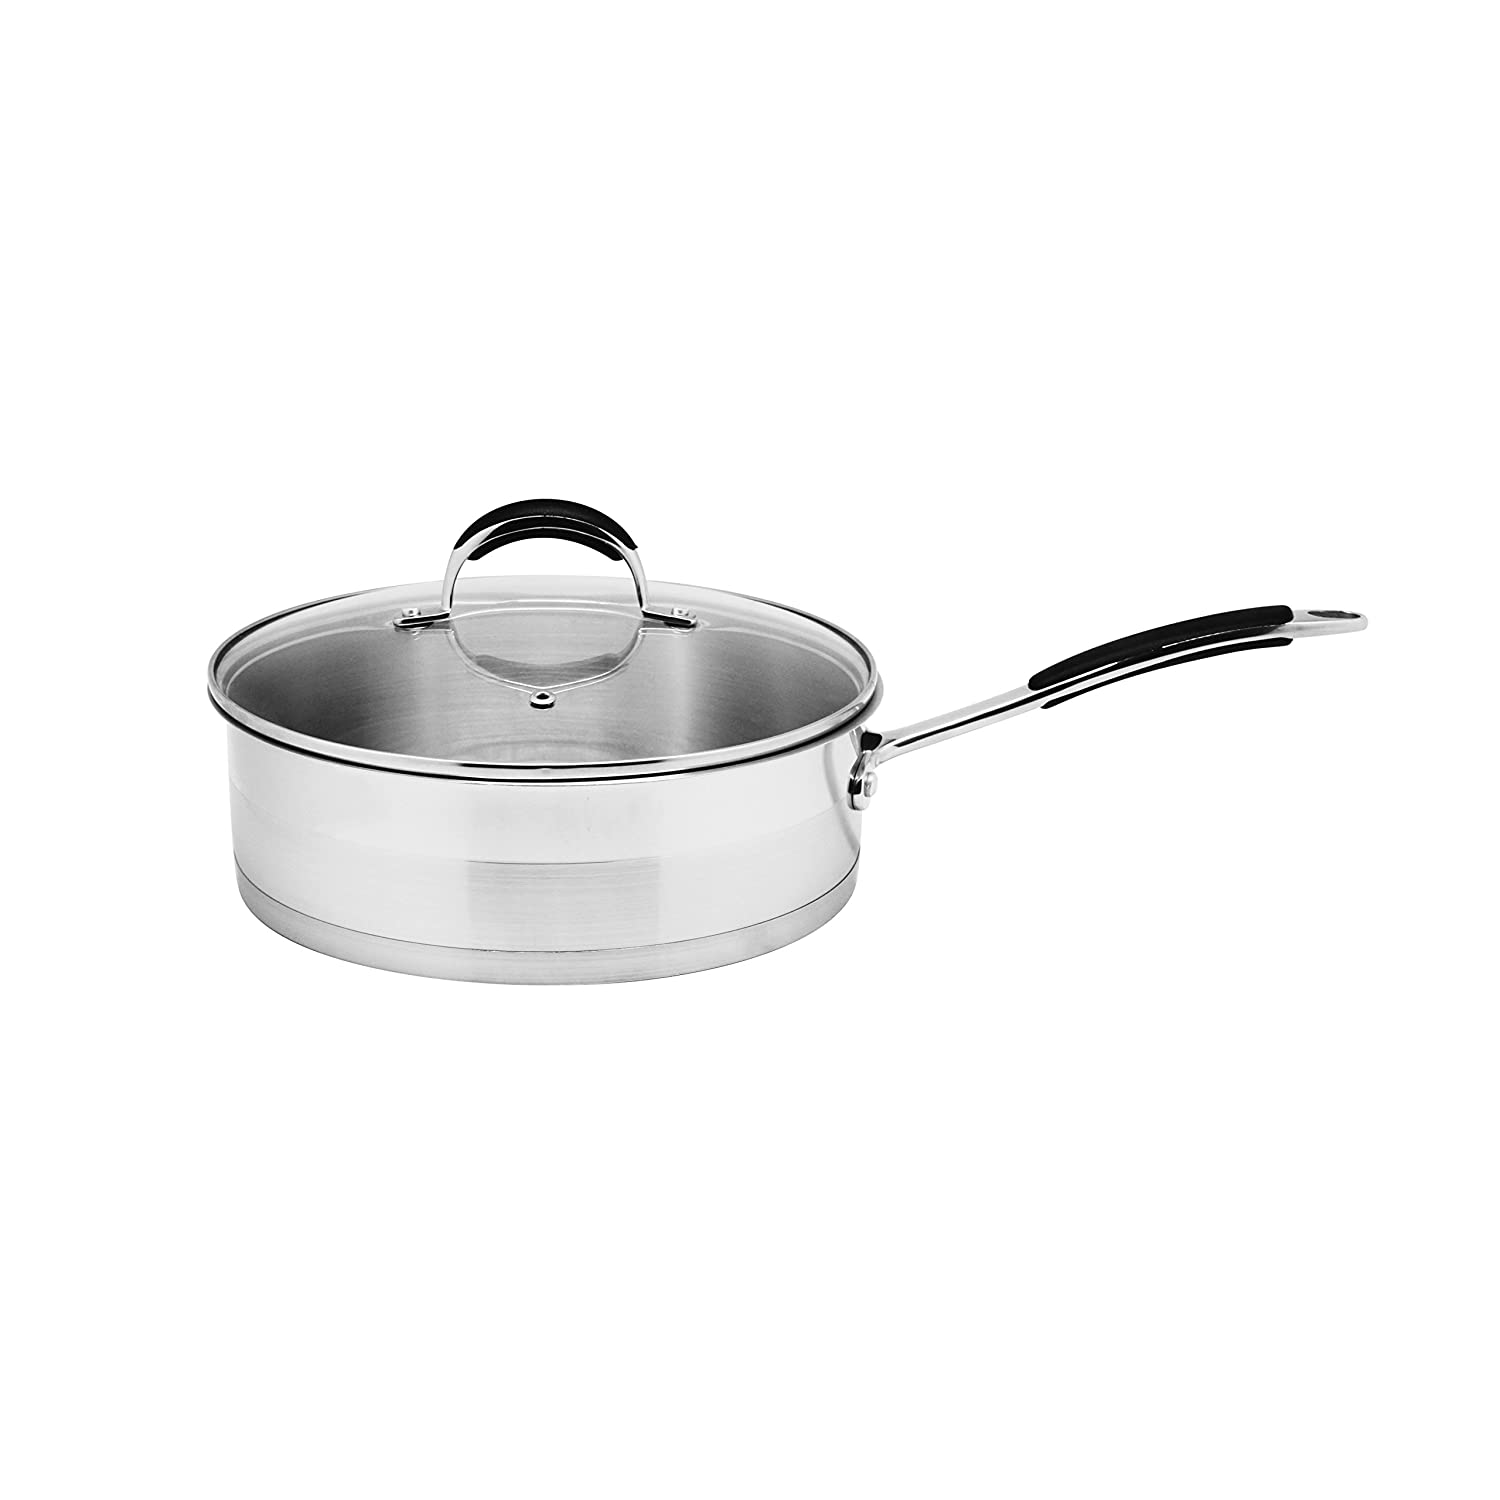 Stainless Steel 3.5-Quart Saute Pan with Glass Lid Silver Metal